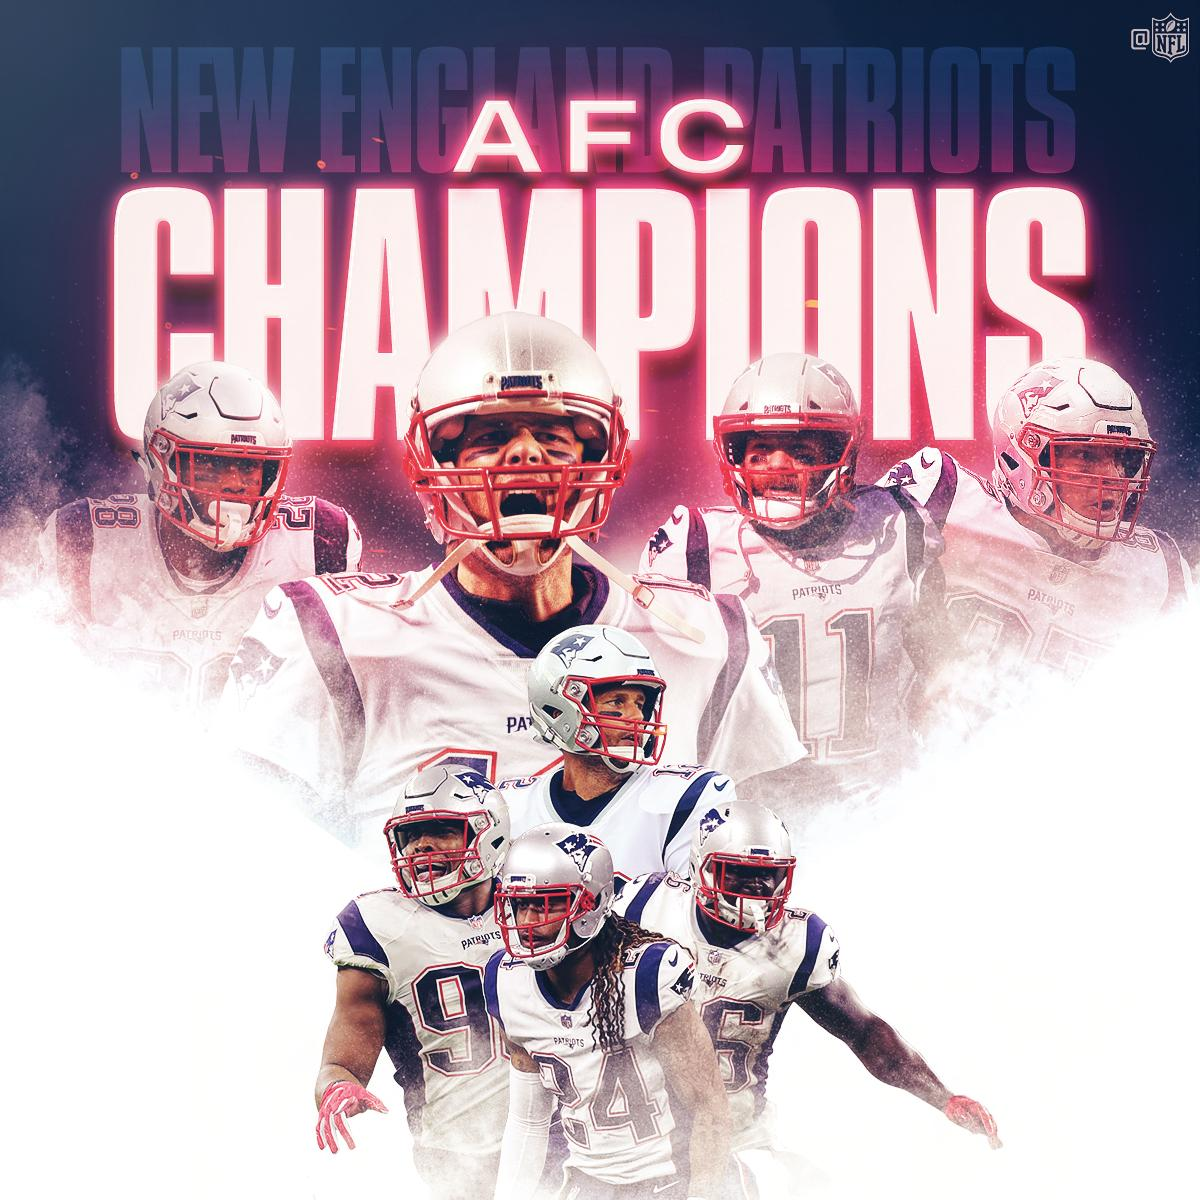 Back-to-back-to-back AFC Championships for the @Patriots! #EverythingWeGot #NFLPlayoffs